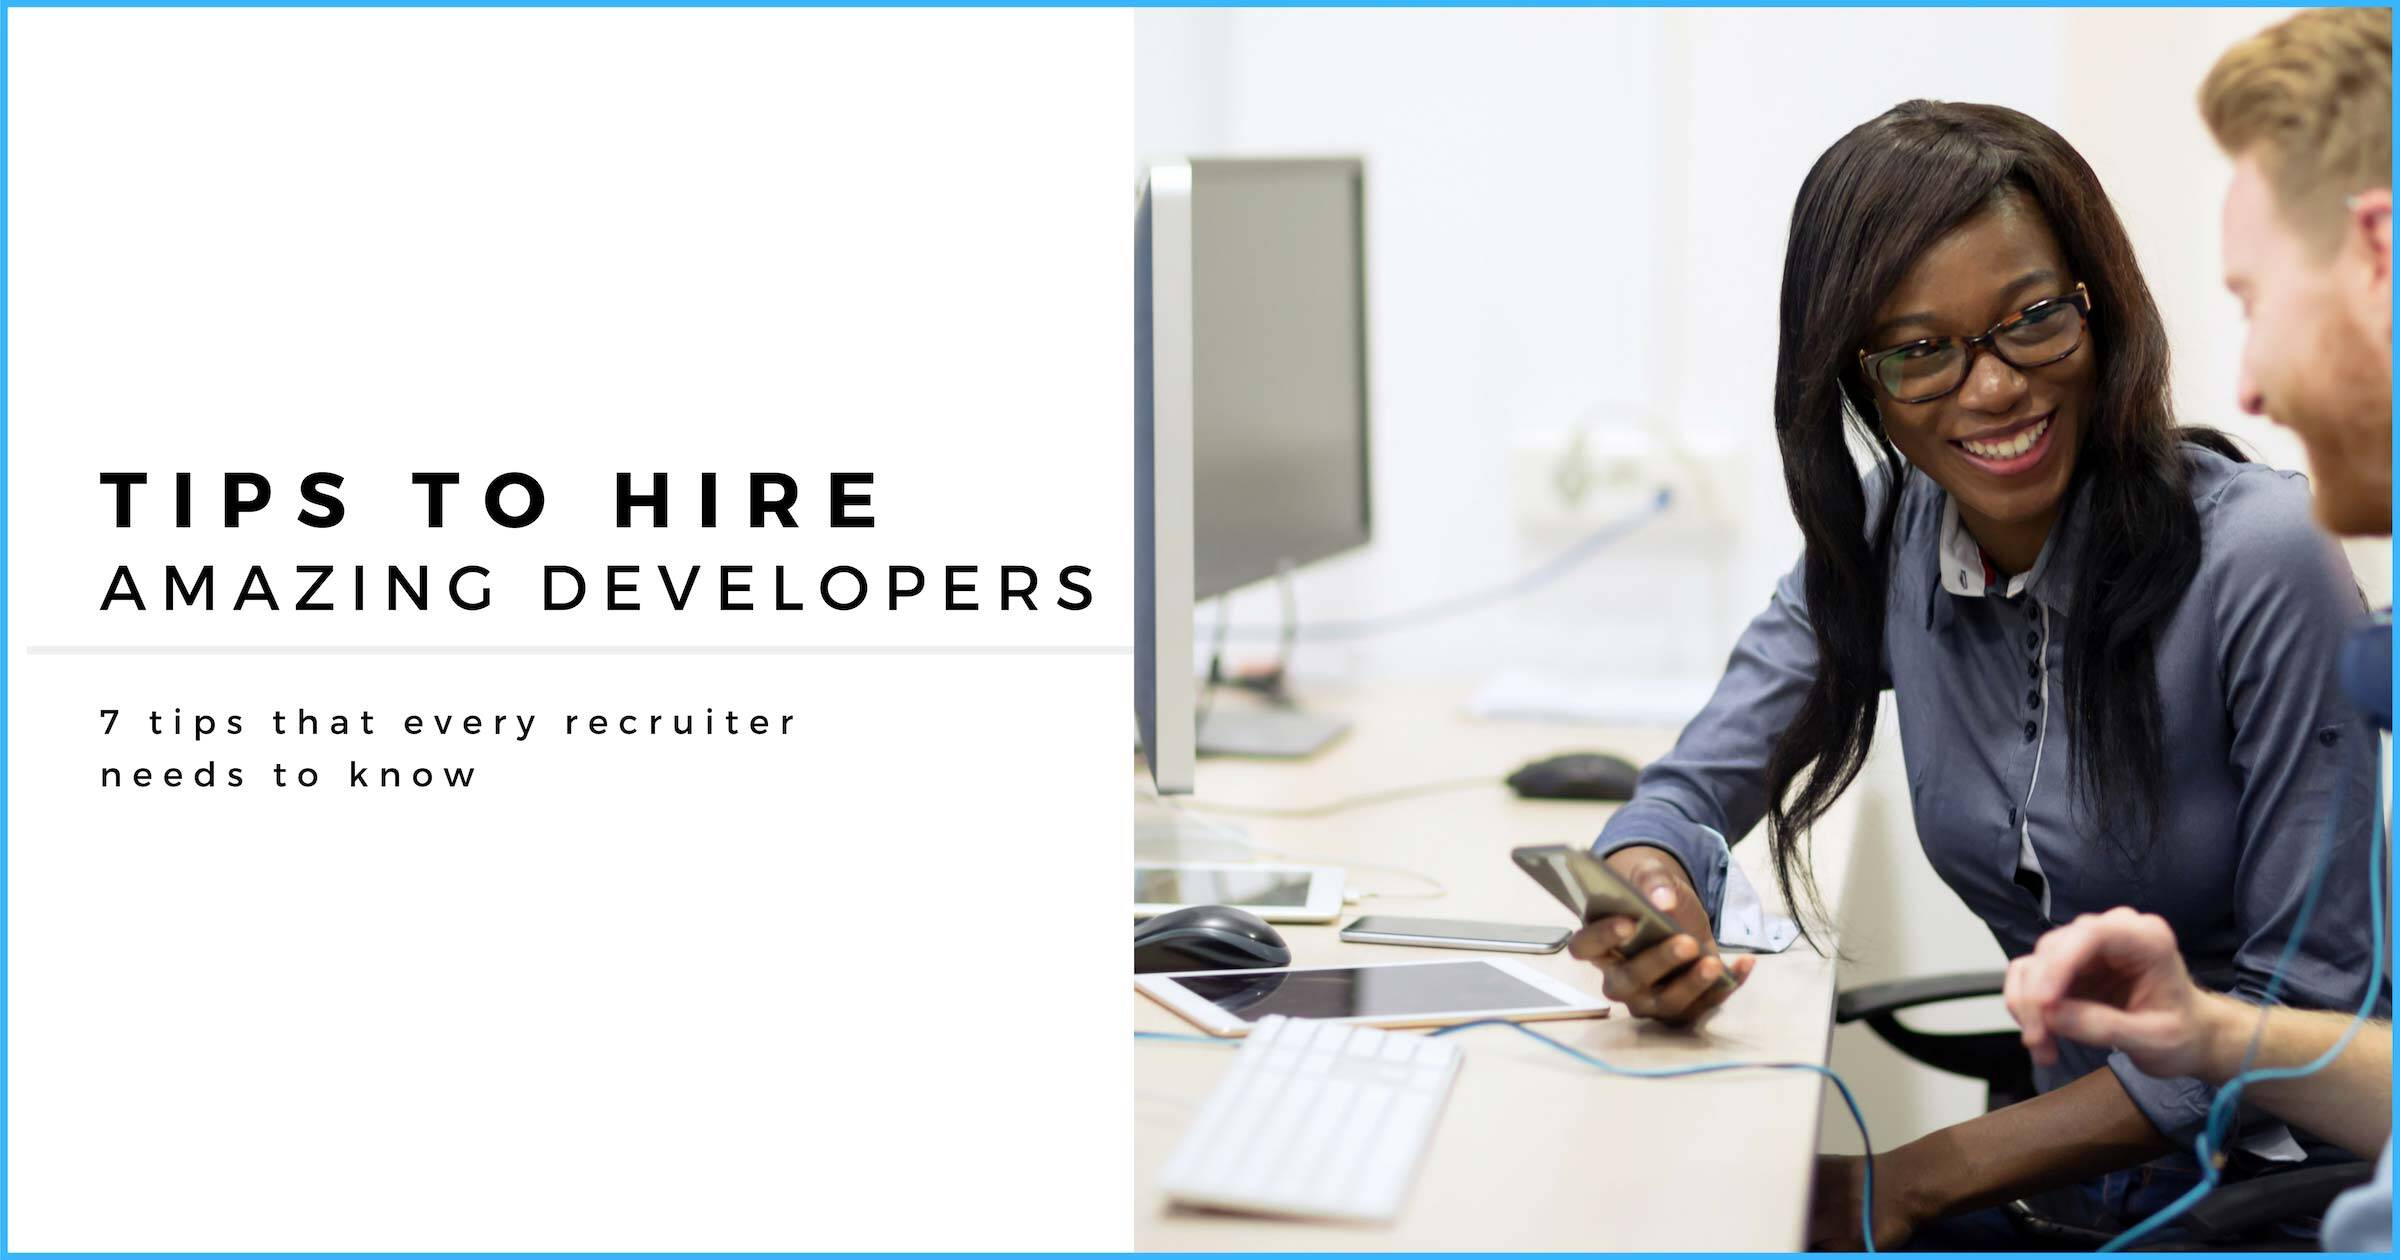 7 Tips to Hire Amazing Developers